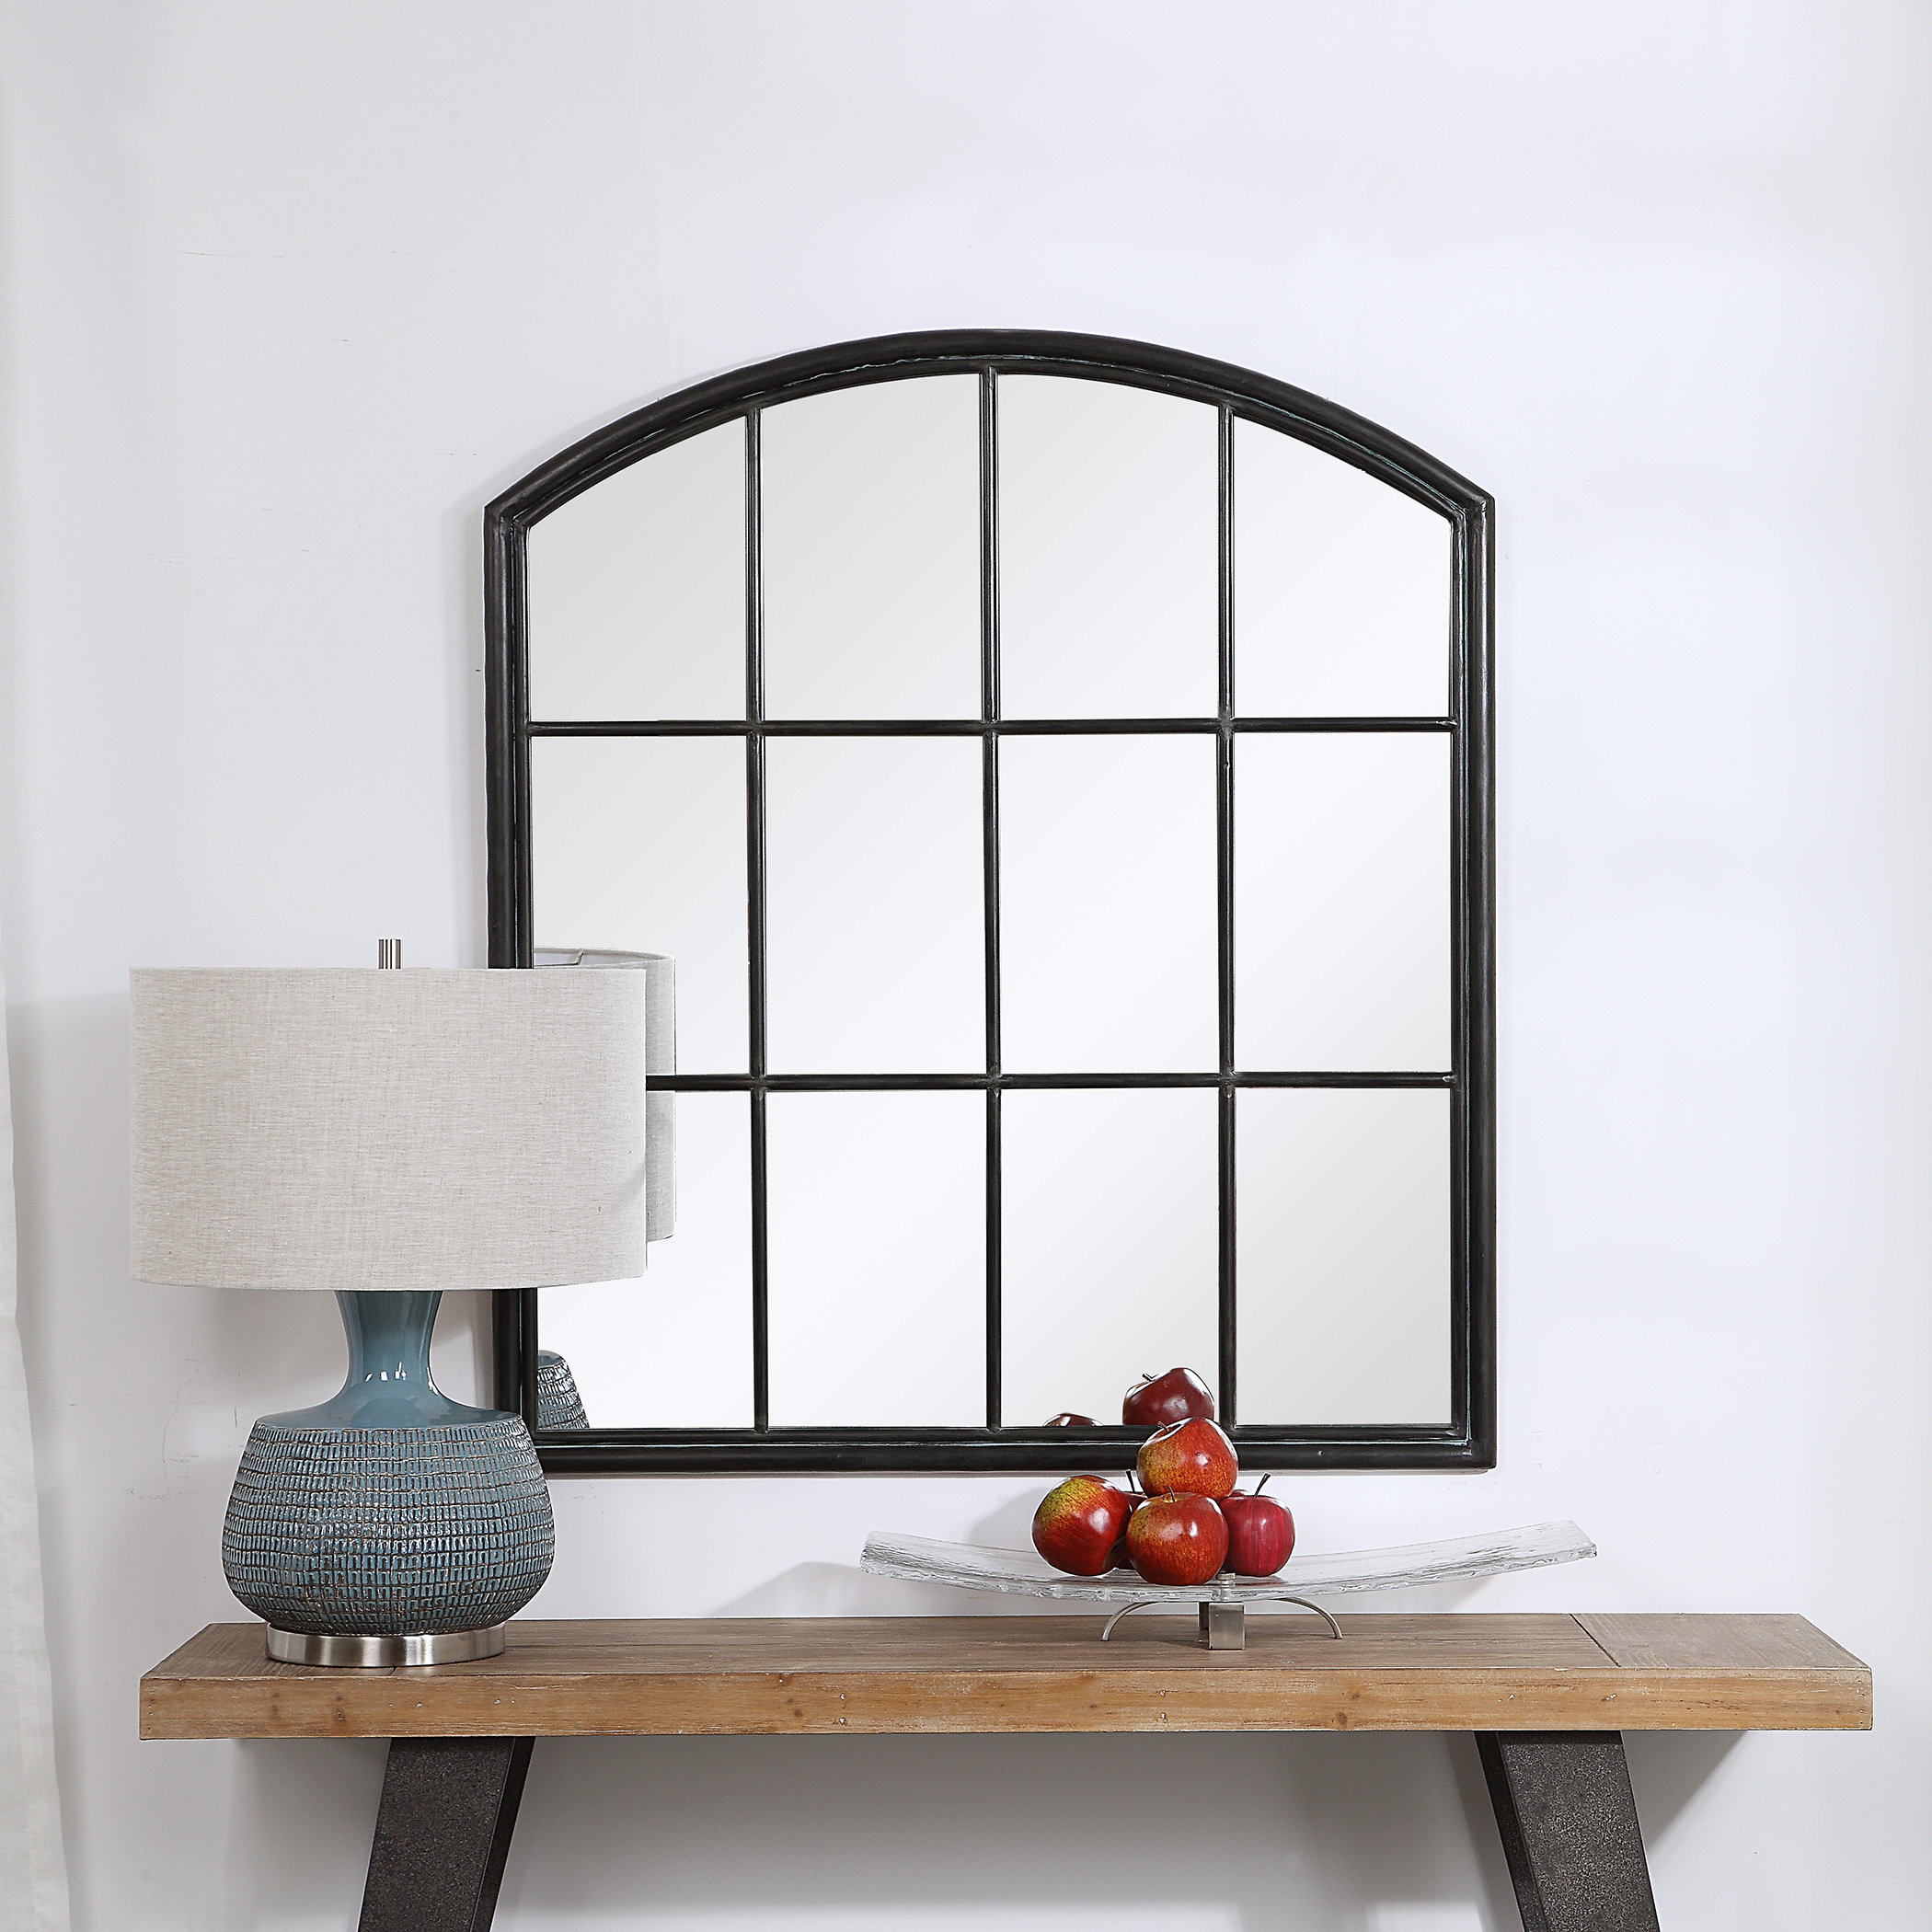 Tindell Arch Accent Mirror Regarding Peetz Modern Rustic Accent Mirrors (Image 28 of 30)